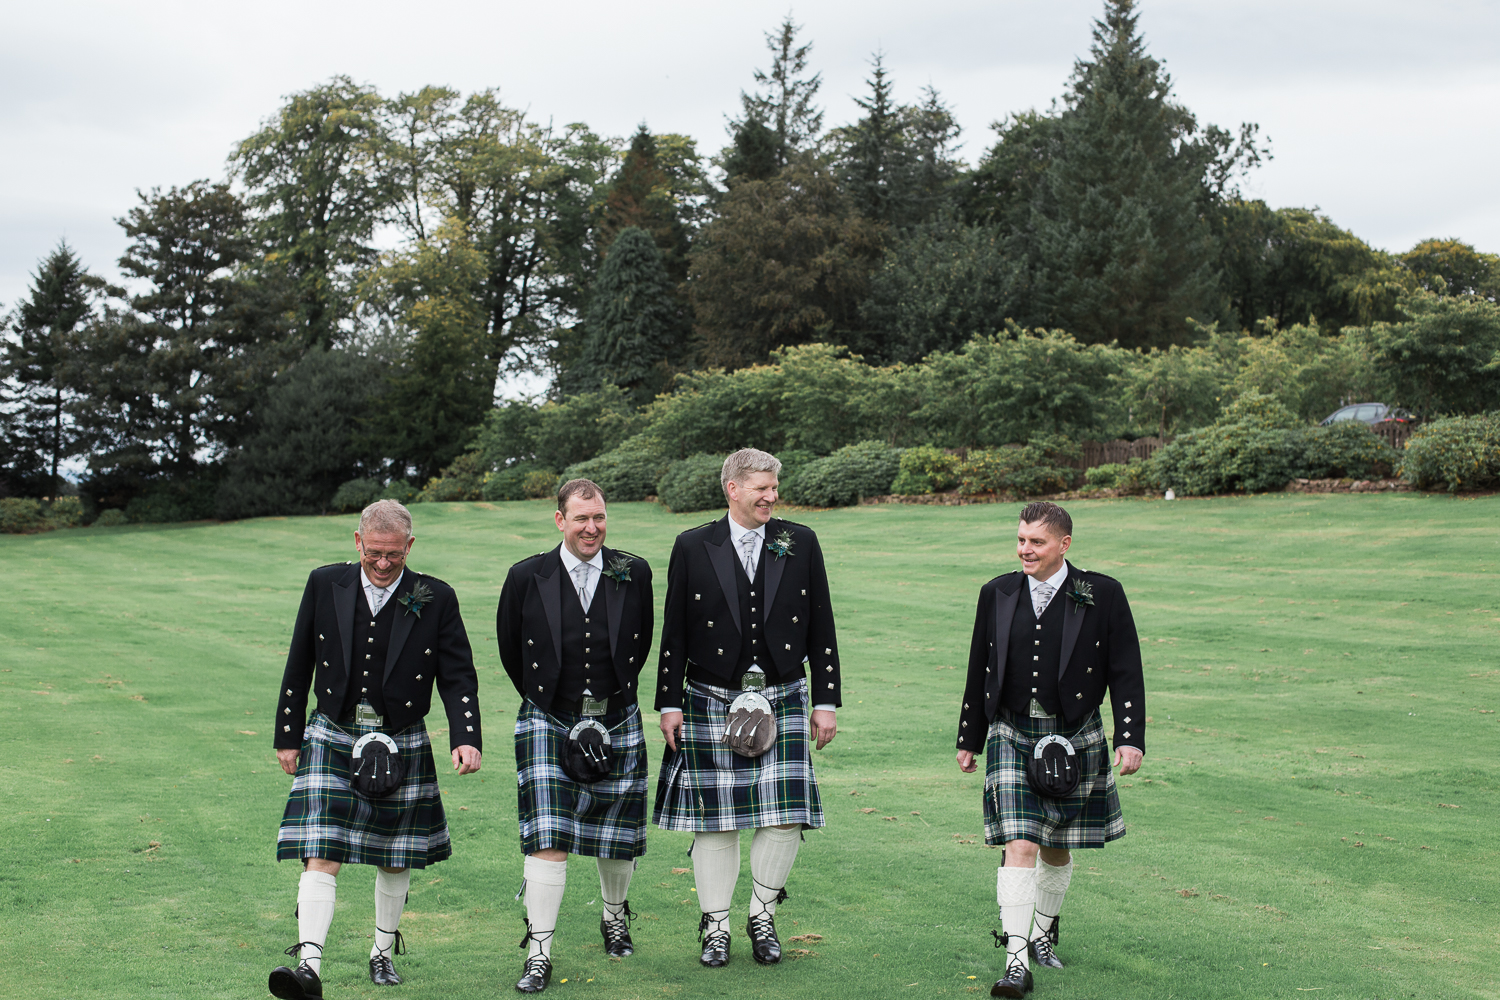 wedding photography in Aberdeen, wedding photographer Aberdeen